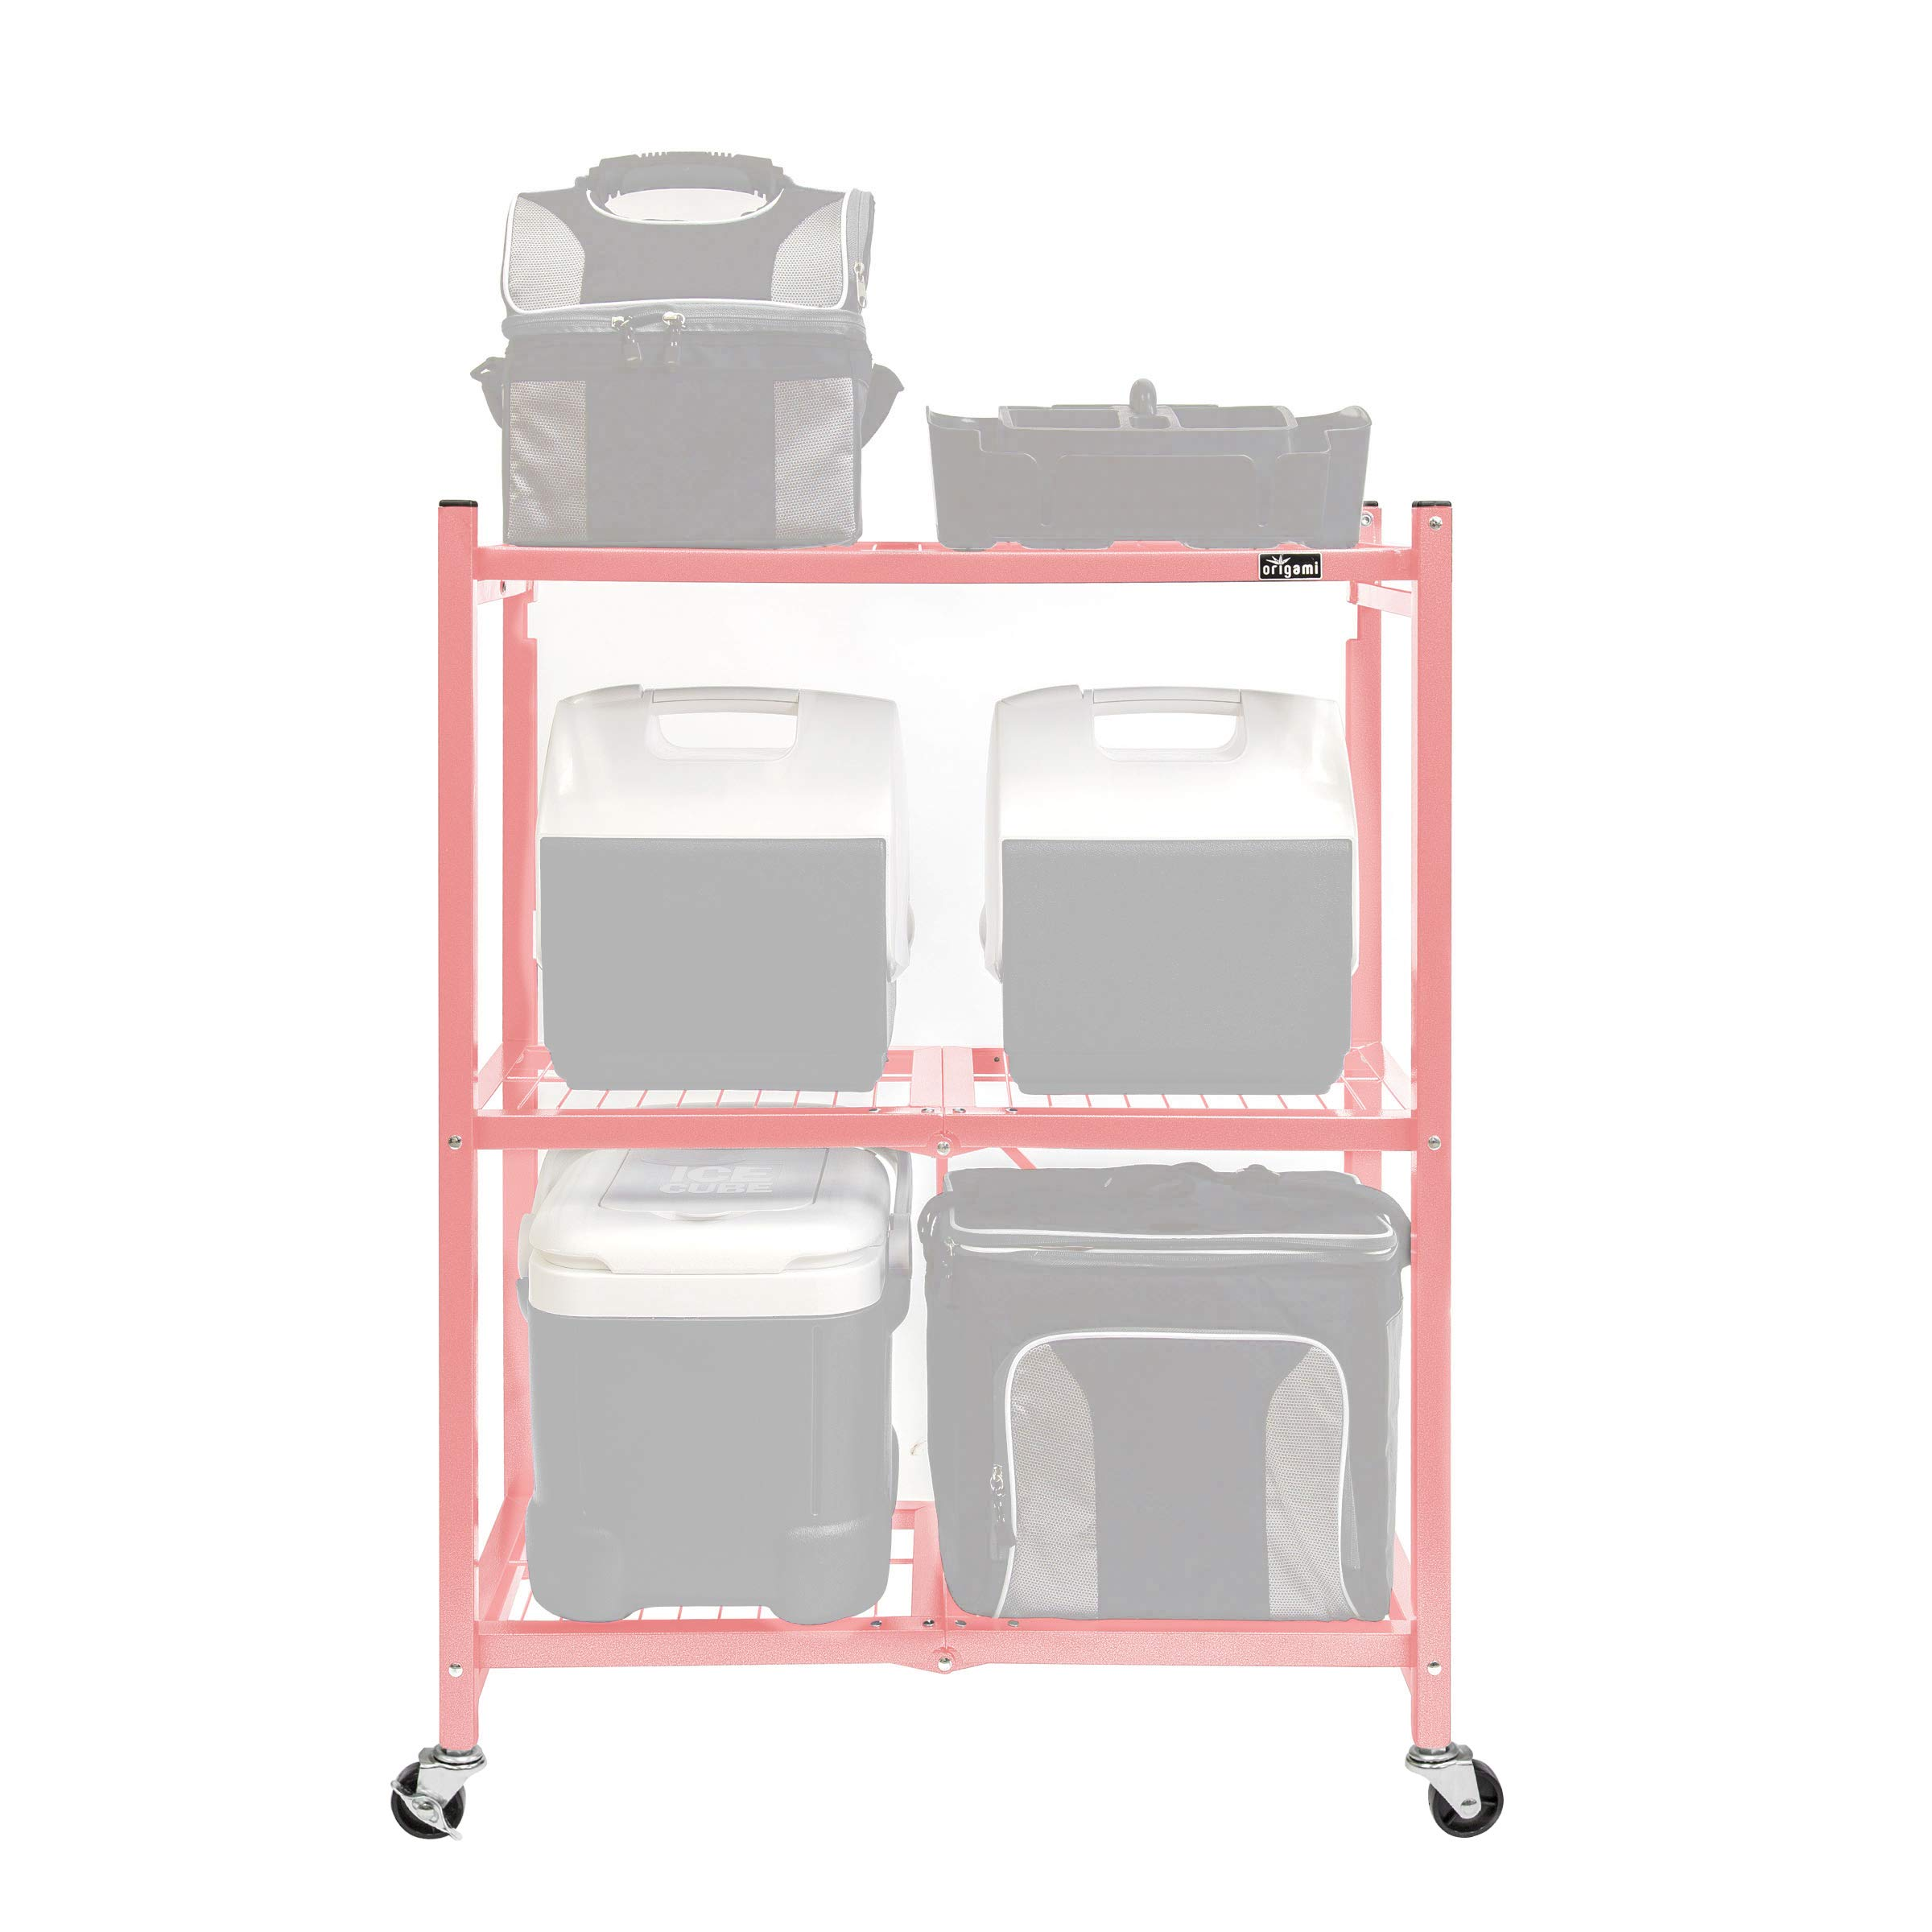 Origami 3-Shelf General Purpose Collapsible/Foldable Shelving Unit, Small Rack with Wheels | Organizer, Rolling Cart, Home Kitchen Laundry Closet Storage, Metal Wire, Pre-Assembled | Coral